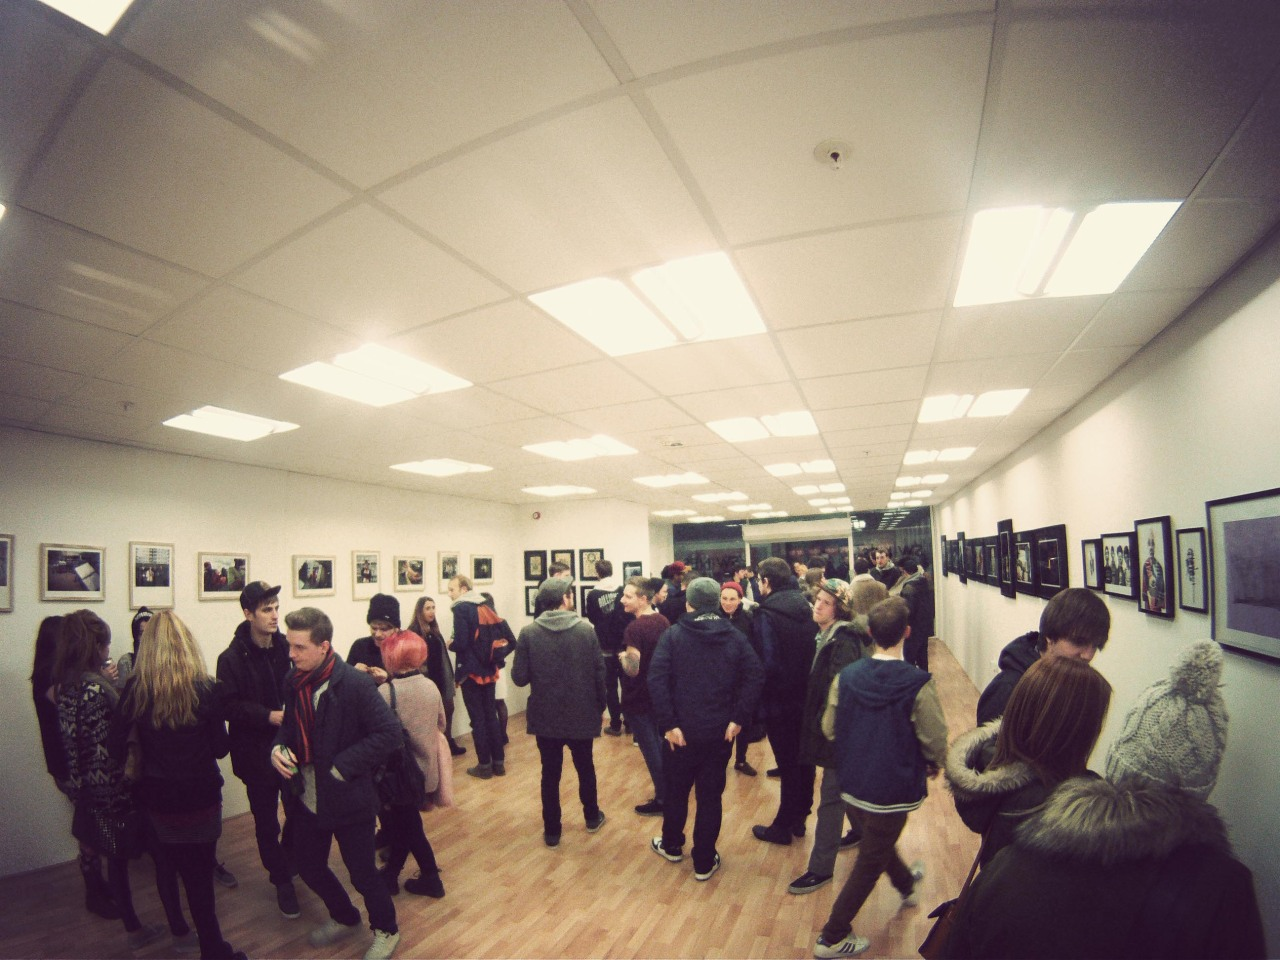 Photos from the recent 'SWINES' Exhibition that took place in Swindon, Really good night, some really strong pieces of Photography and Illustration work on show.